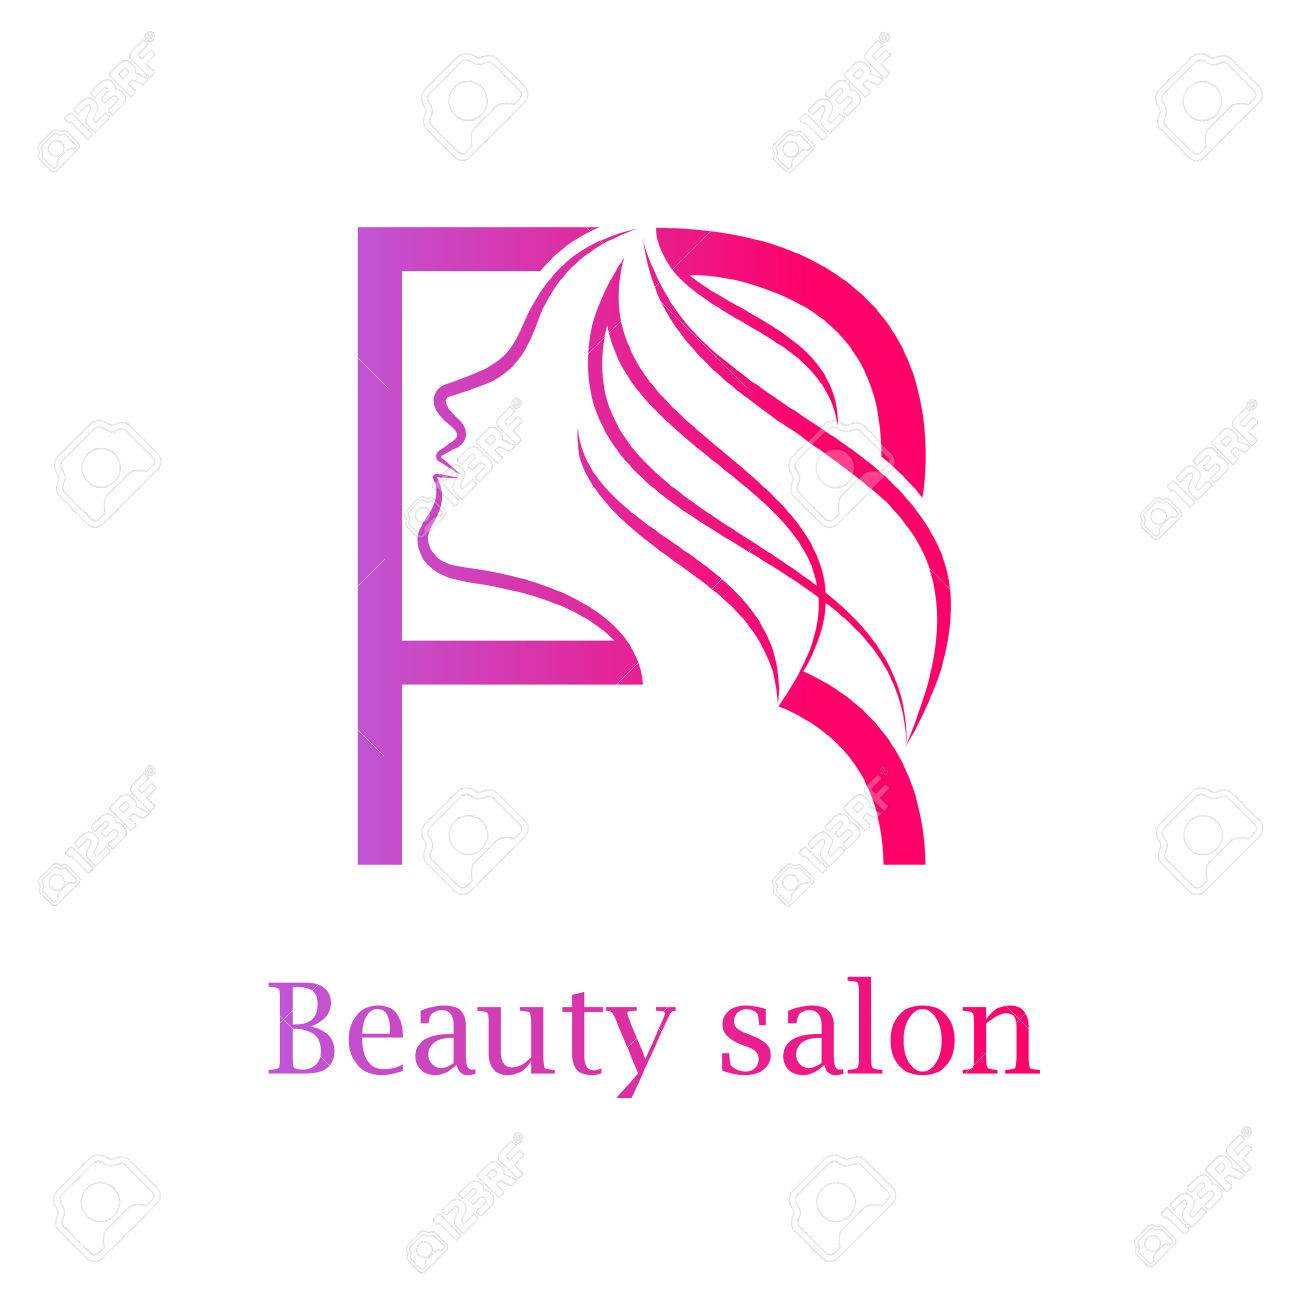 Abstract Letter R Logo Beauty Salon Logo Design Template Royalty Free Cliparts Vectors And Stock Illustration Image 84733911